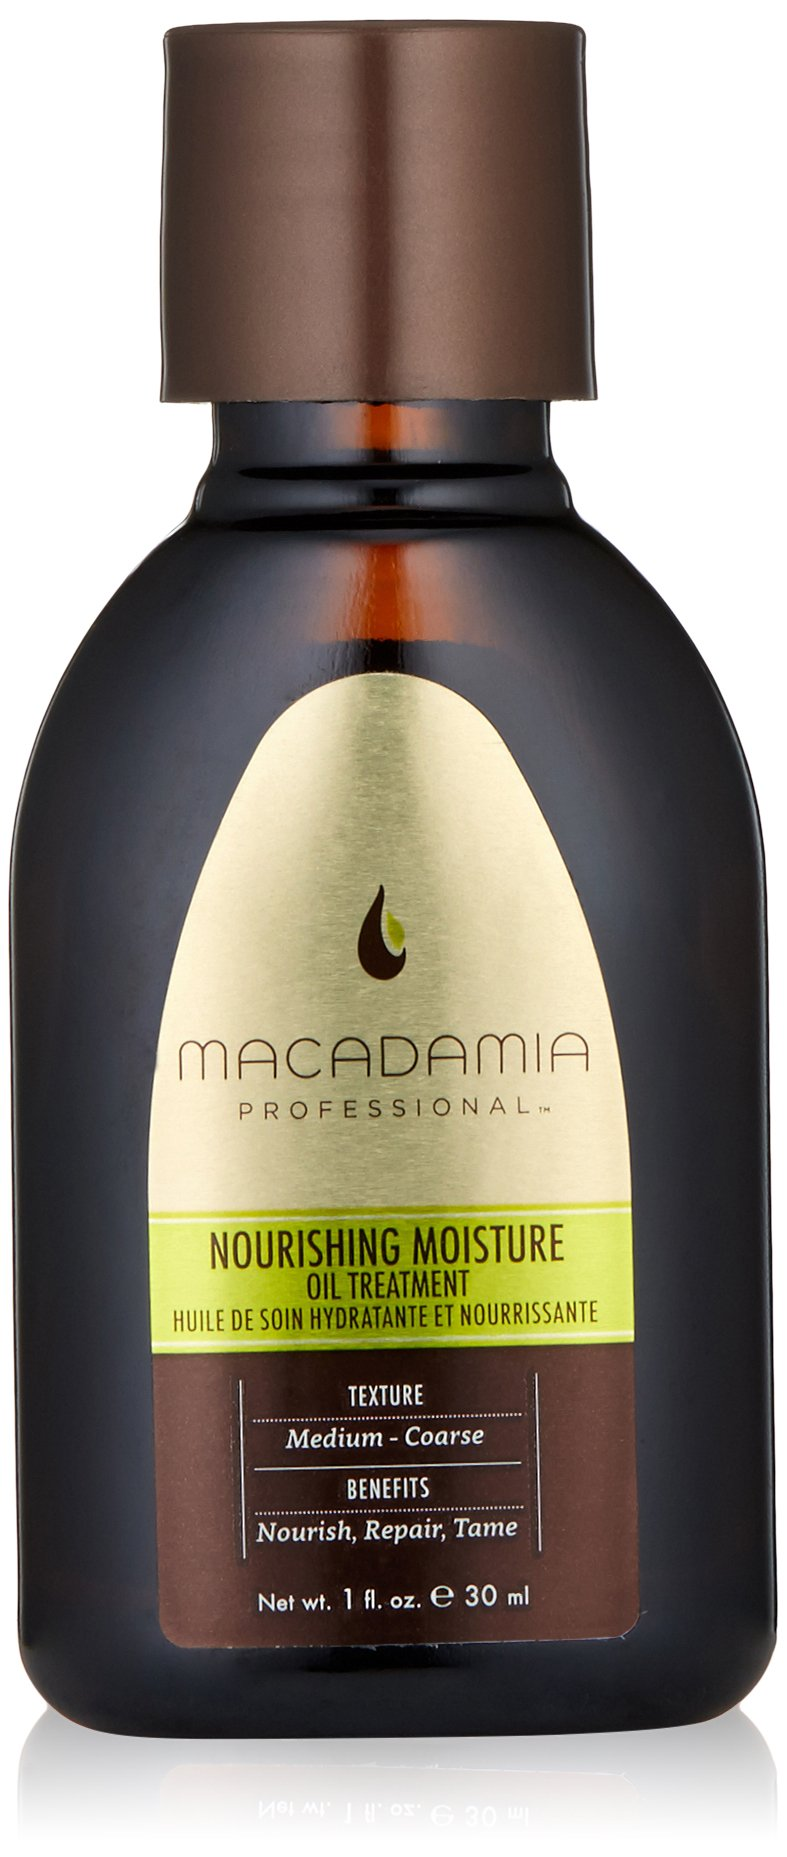 Macadamia Professional Nourishing Moisture Oil Treatment - .9oz. - Medium to Coarse Hair Textures - Nourishes & Tames - With Argan Oil - Sulfate, Gluten & Paraben Free, Safe for Color-Treated Hair